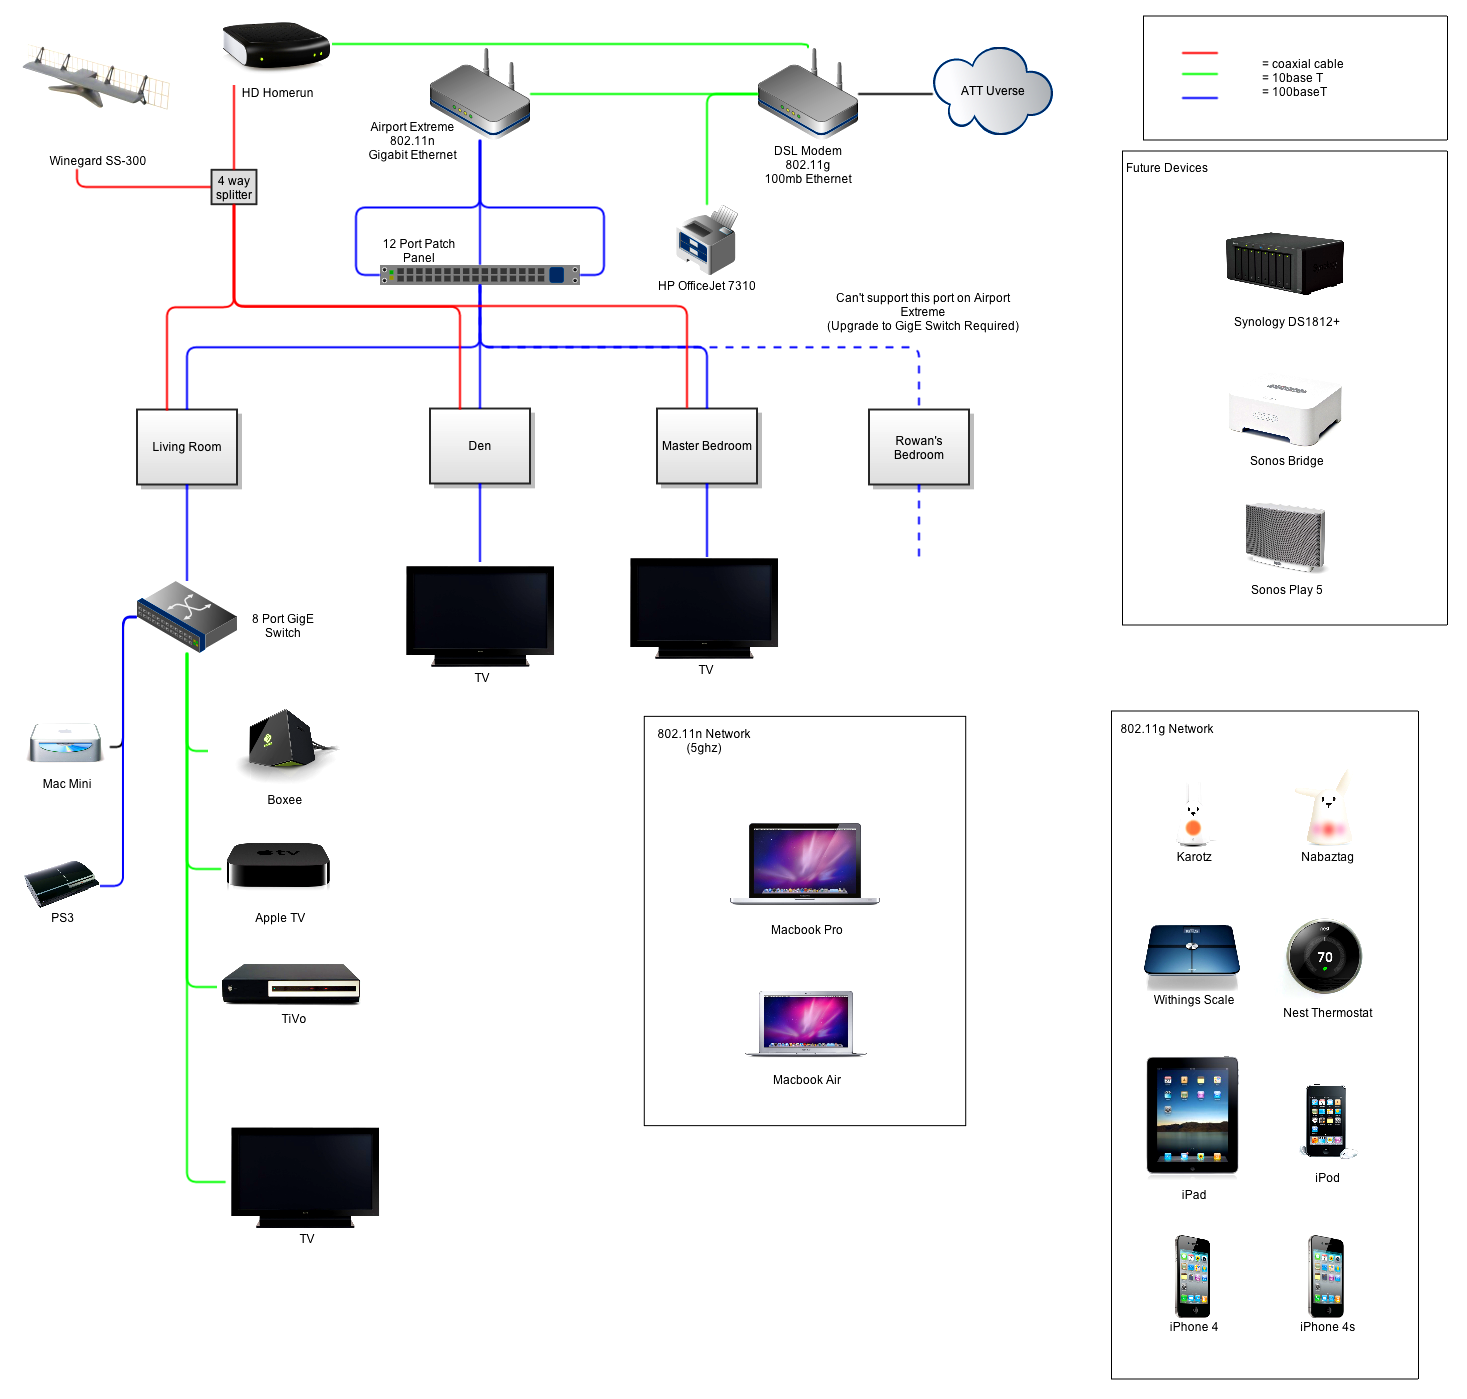 22 Great Ideas Of Network Diagram Software Free Online Technique | Diagram,  House wiring, How to make drawingwww.pinterest.co.kr